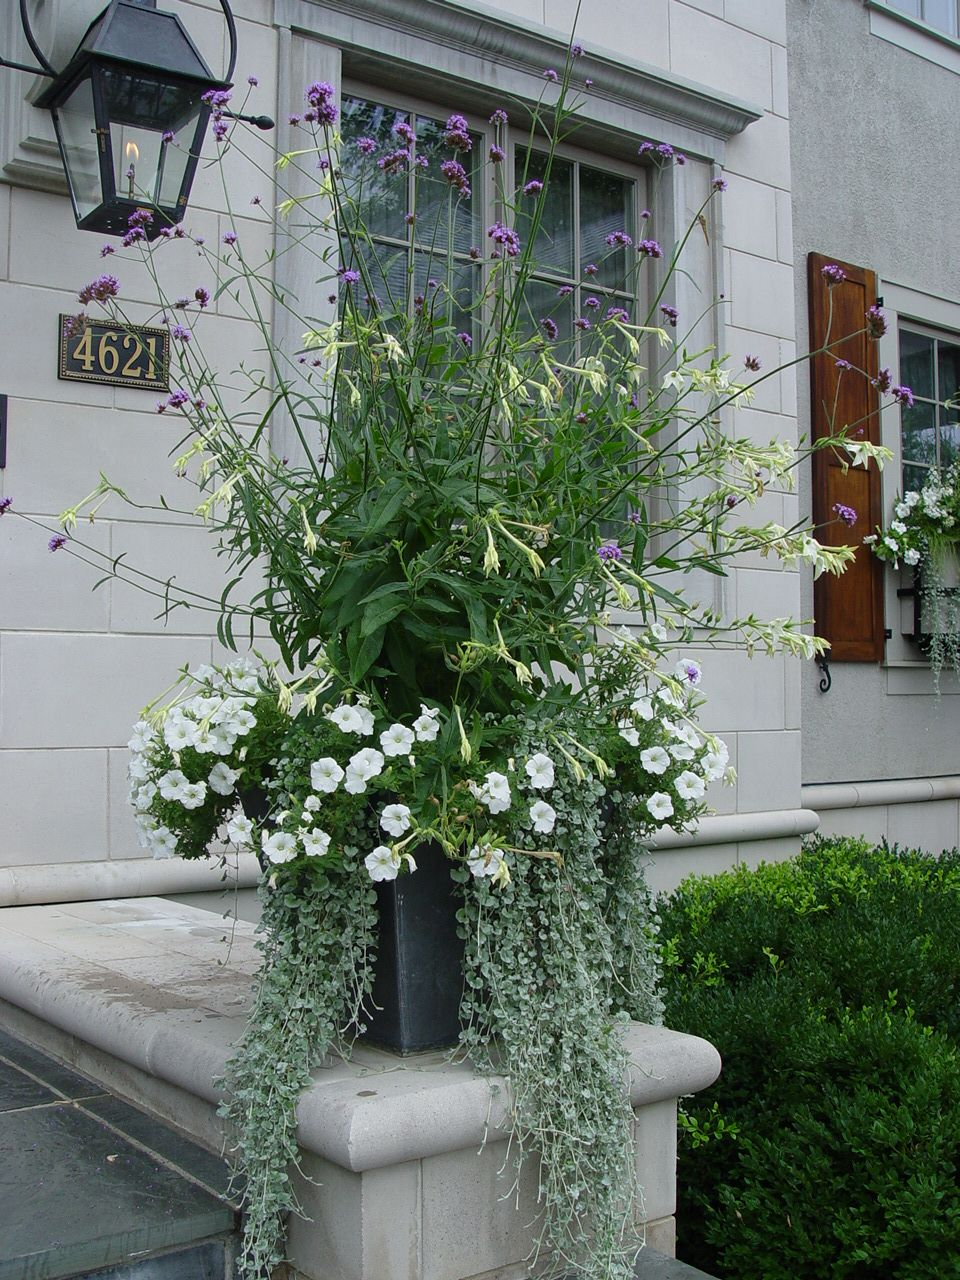 White nicotiana verbena bonariensis white petunias and dichondra gardening with white - Growing petunias pots balconies porches ...